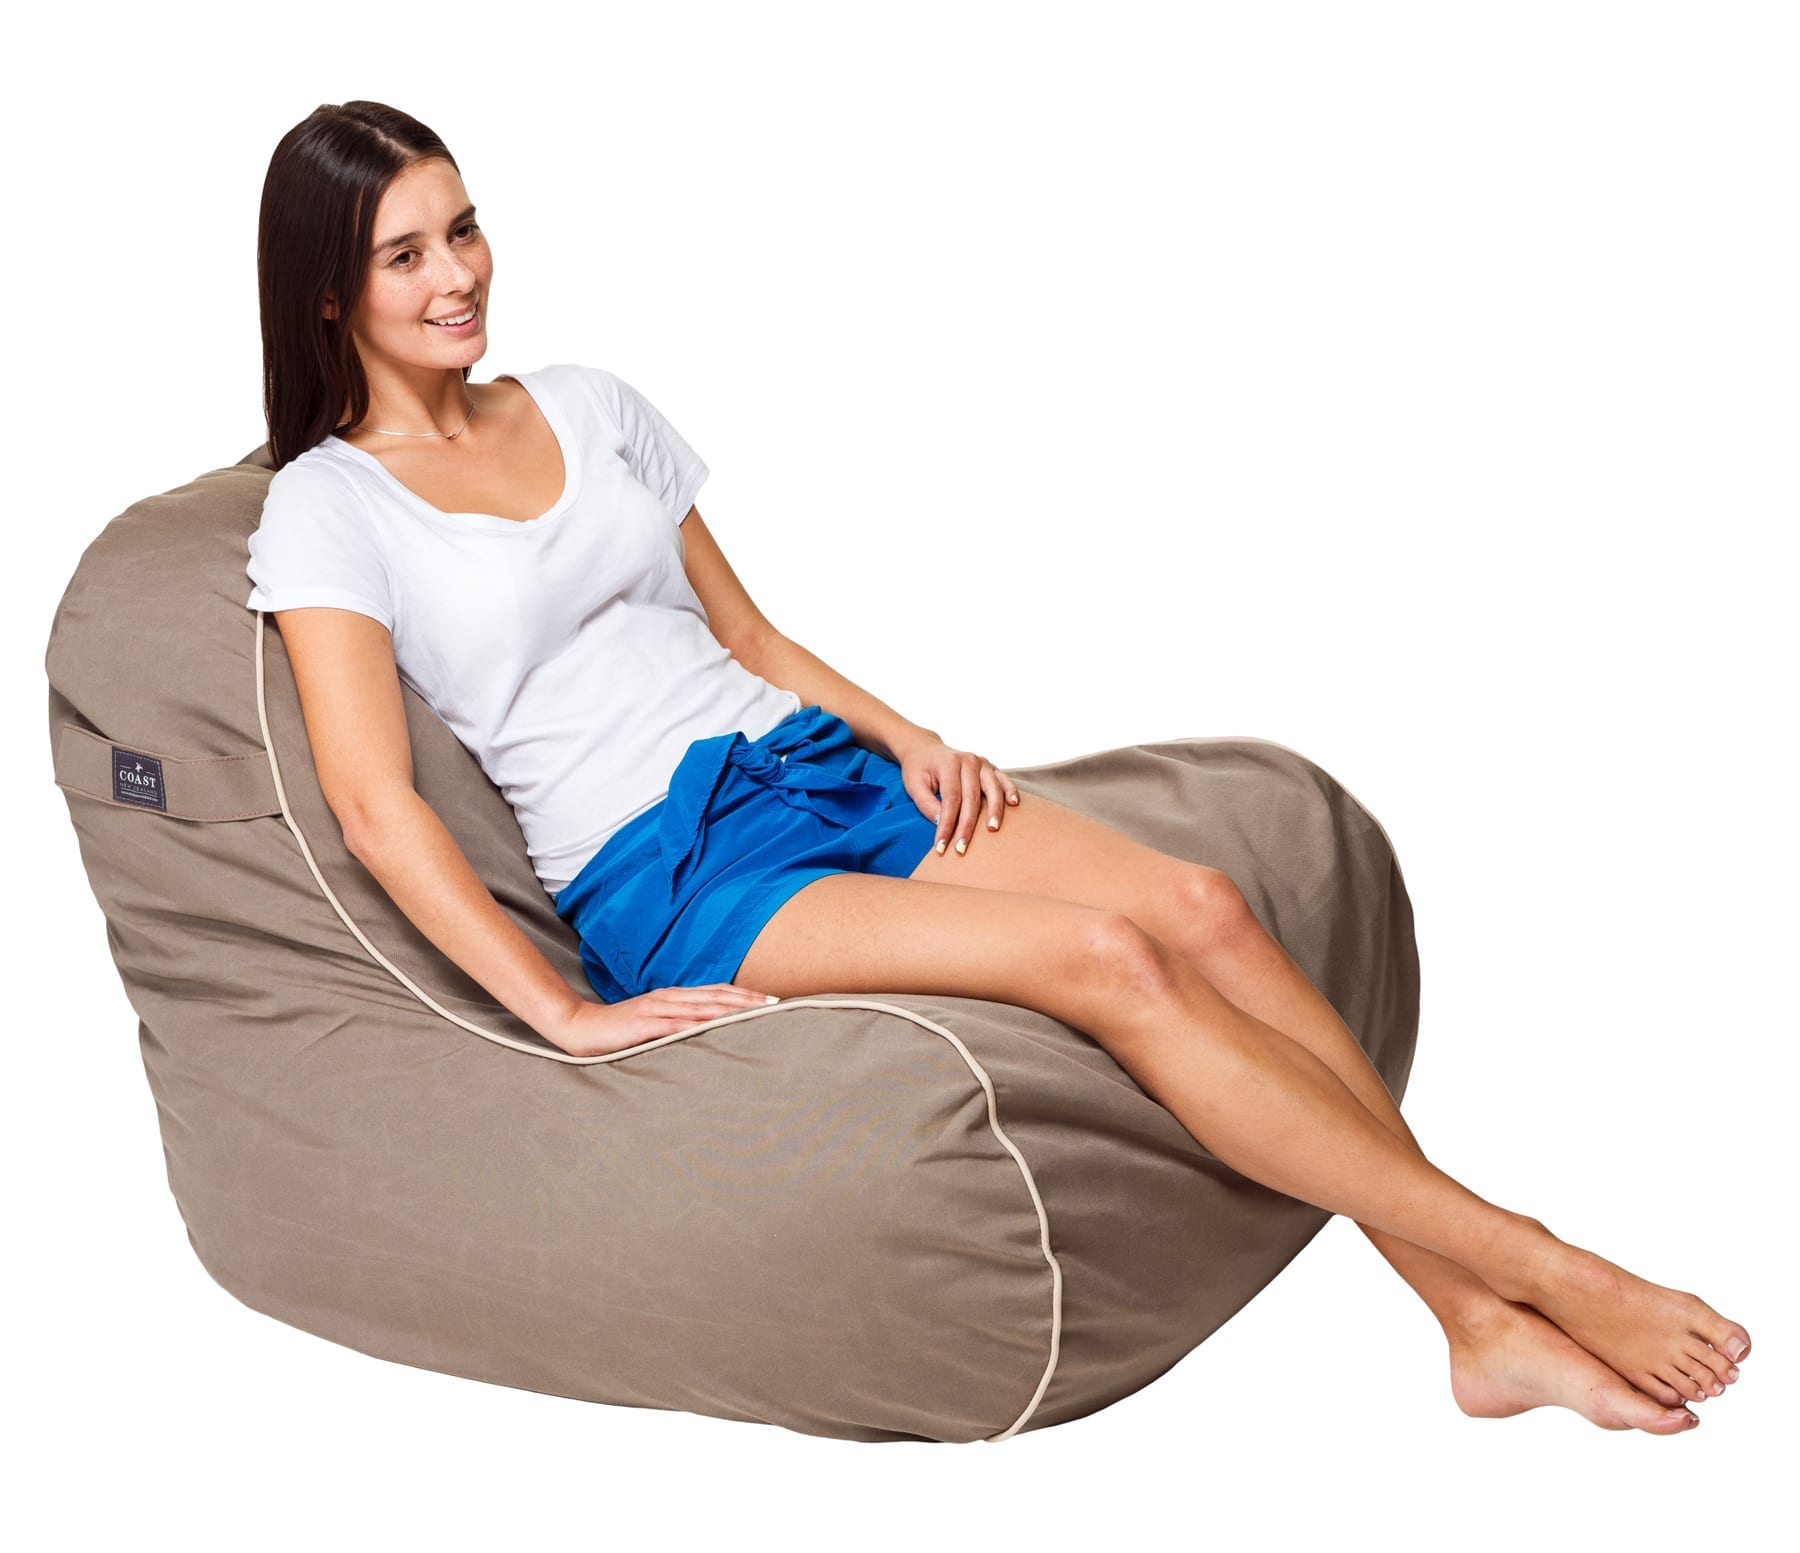 marine bean bag chairs extra large anti gravity chair with side table coast unfilled mckenzie and willis